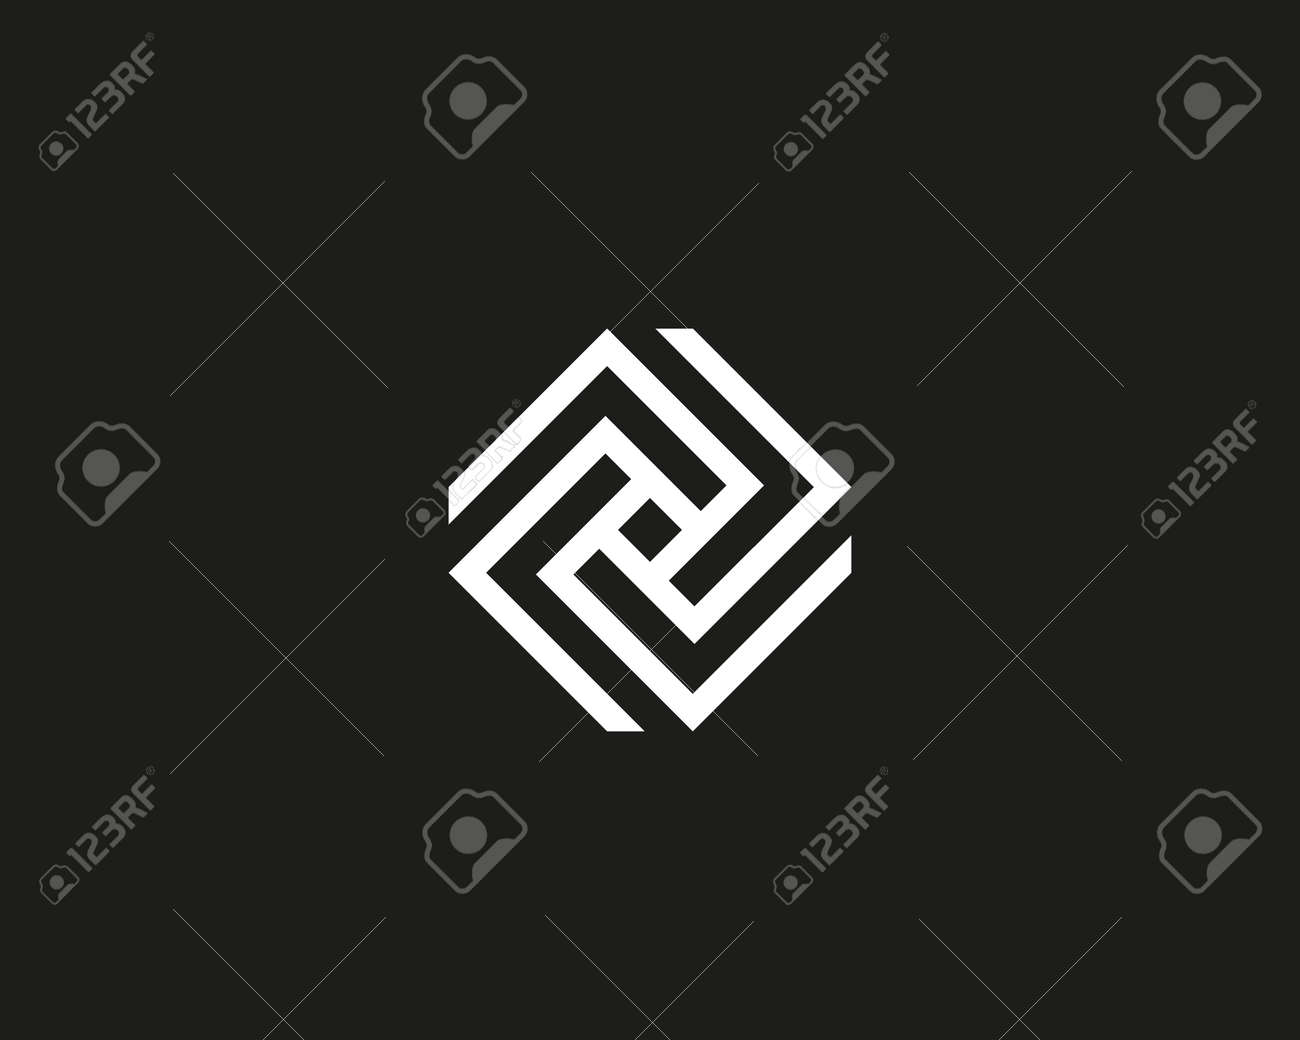 Line art cube logo design template  Abstract geometric logotype